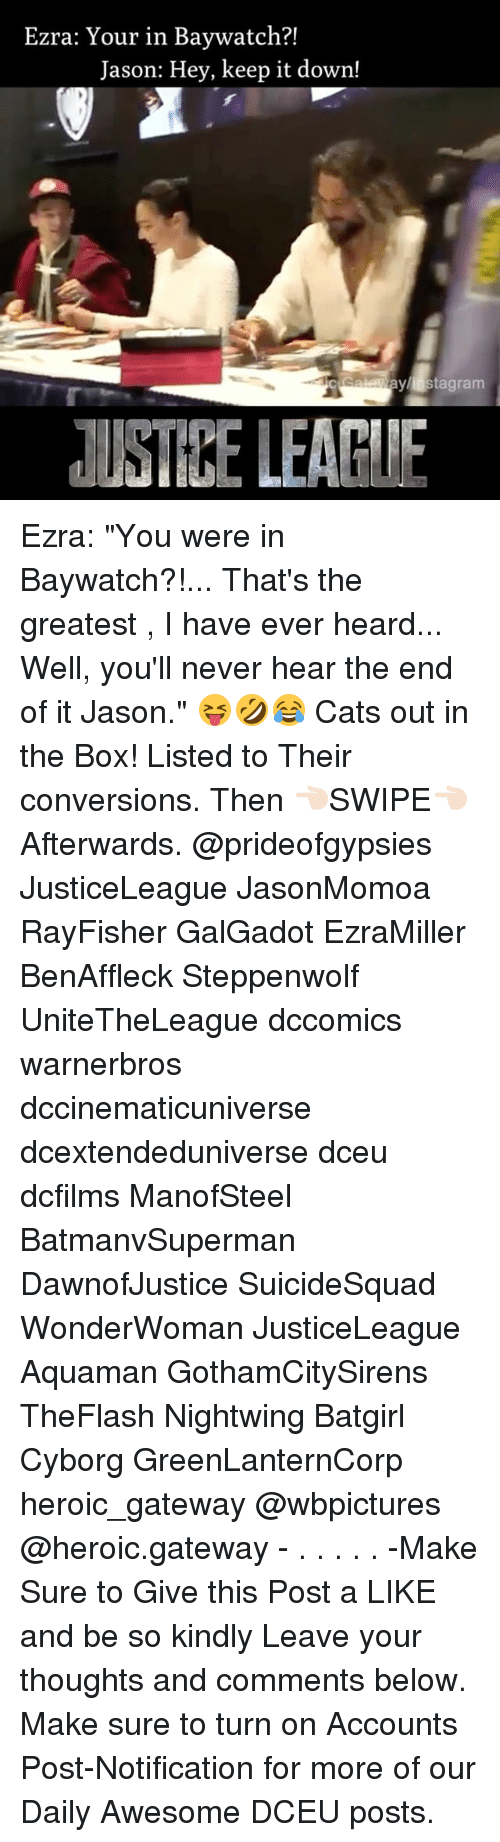 "Cats, Memes, and Gateway: Ezra: Your in Baywatch?!  Jason: Hey, keep it down!  stagram  AUSTIEE LEAPIE Ezra: ""You were in Baywatch?!... That's the greatest , I have ever heard... Well, you'll never hear the end of it Jason."" 😝🤣😂 Cats out in the Box! Listed to Their conversions. Then 👈🏻SWIPE👈🏻 Afterwards. @prideofgypsies JusticeLeague JasonMomoa RayFisher GalGadot EzraMiller BenAffleck Steppenwolf UniteTheLeague dccomics warnerbros dccinematicuniverse dcextendeduniverse dceu dcfilms ManofSteel BatmanvSuperman DawnofJustice SuicideSquad WonderWoman JusticeLeague Aquaman GothamCitySirens TheFlash Nightwing Batgirl Cyborg GreenLanternCorp heroic_gateway @wbpictures @heroic.gateway - . . . . . -Make Sure to Give this Post a LIKE and be so kindly Leave your thoughts and comments below. Make sure to turn on Accounts Post-Notification for more of our Daily Awesome DCEU posts."